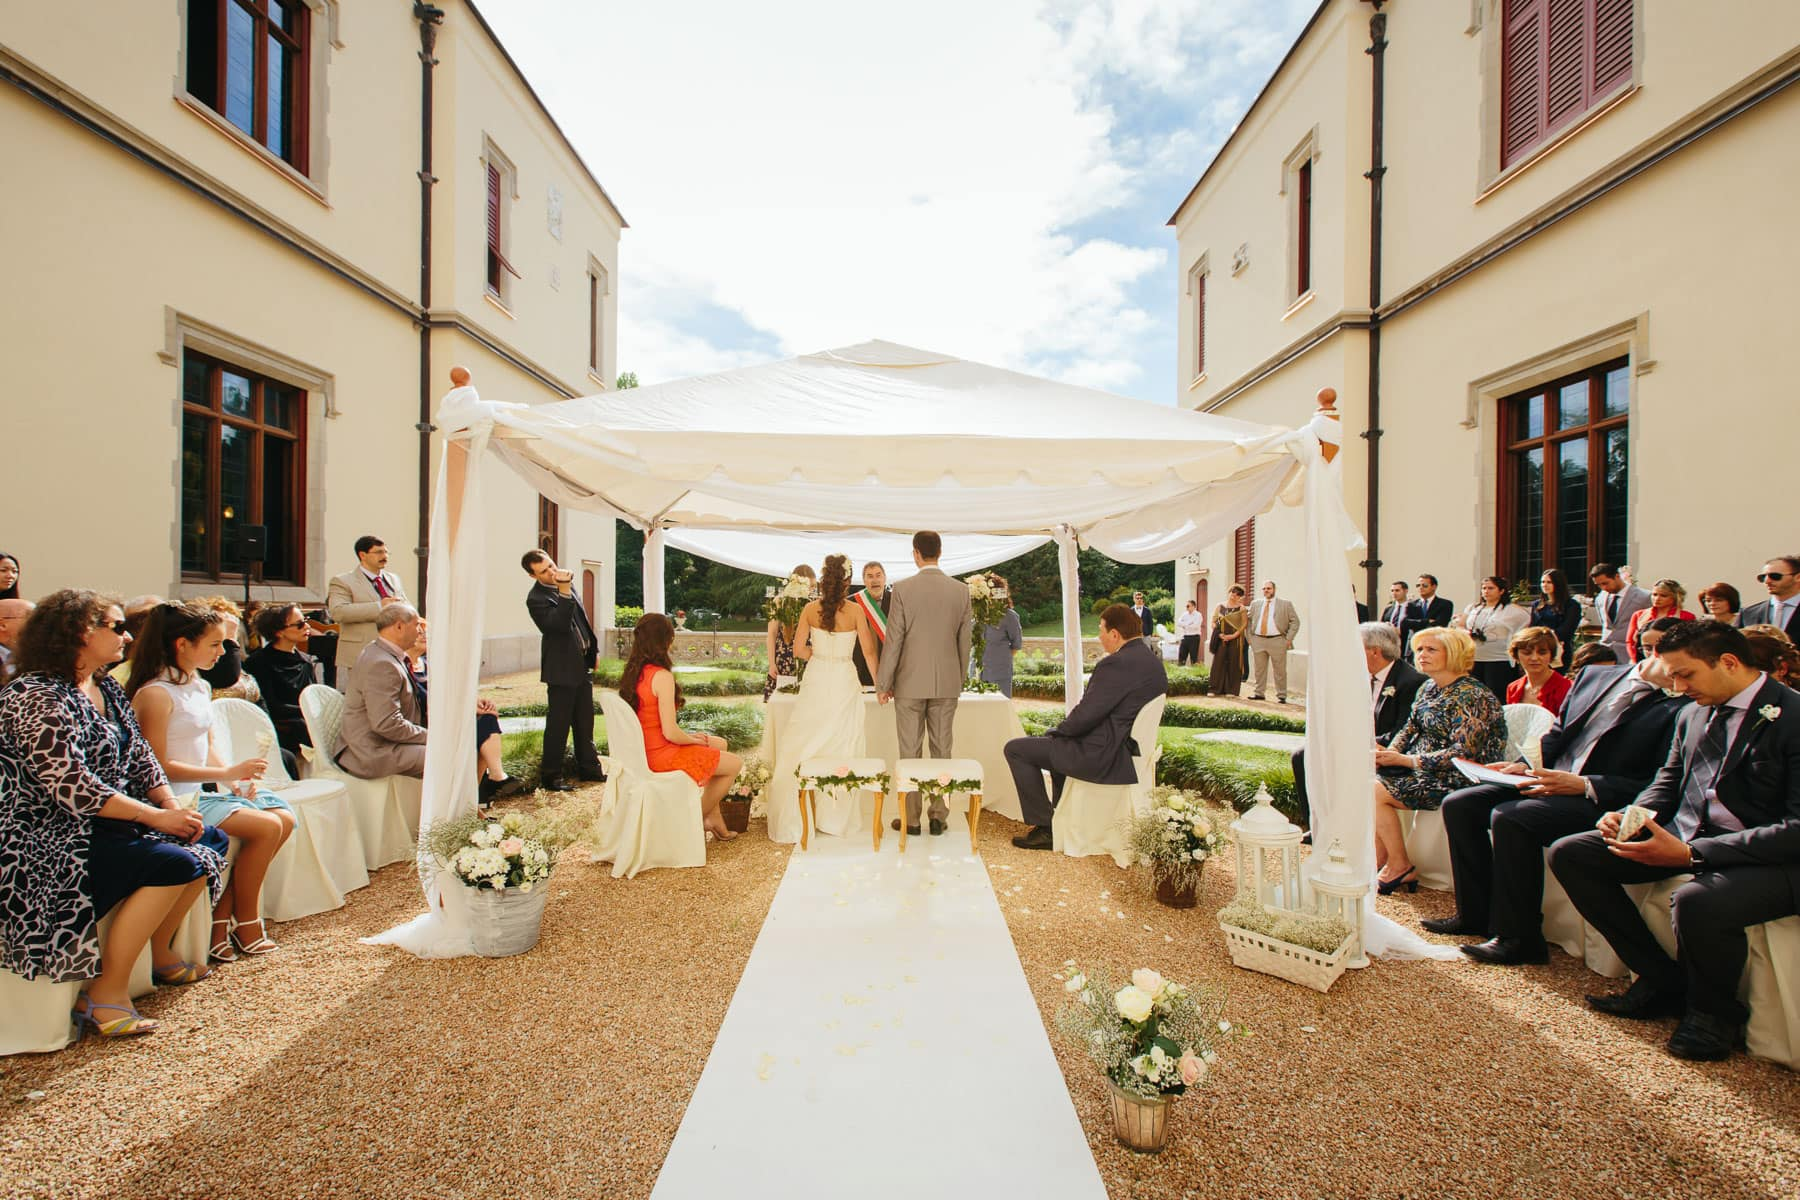 The bride and groom stand beneath a white tent during the ceremony with guests seating around them in the courtyard during a Italian destination wedding in Castello Dal Pozzo.